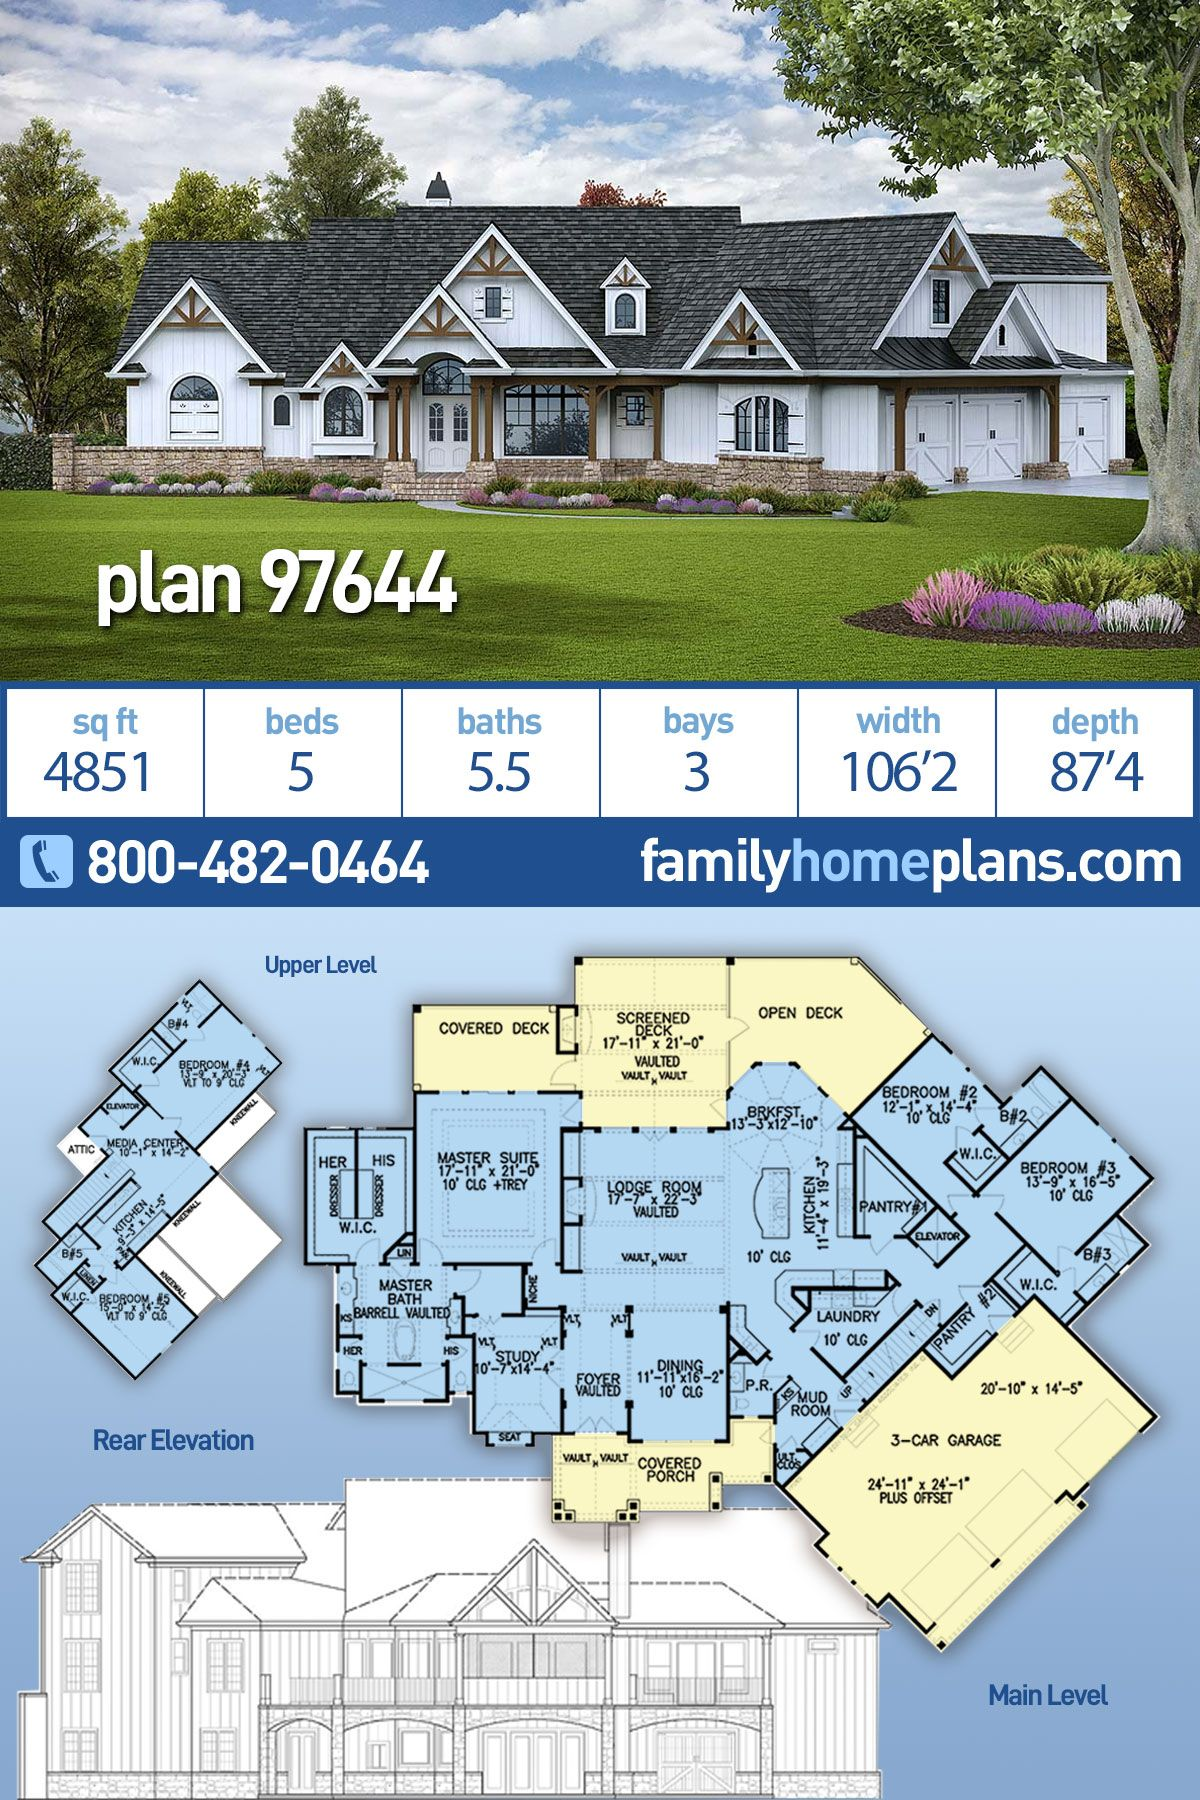 Southern Style House Plan 97644 With 5 Bed 6 Bath 3 Car Garage